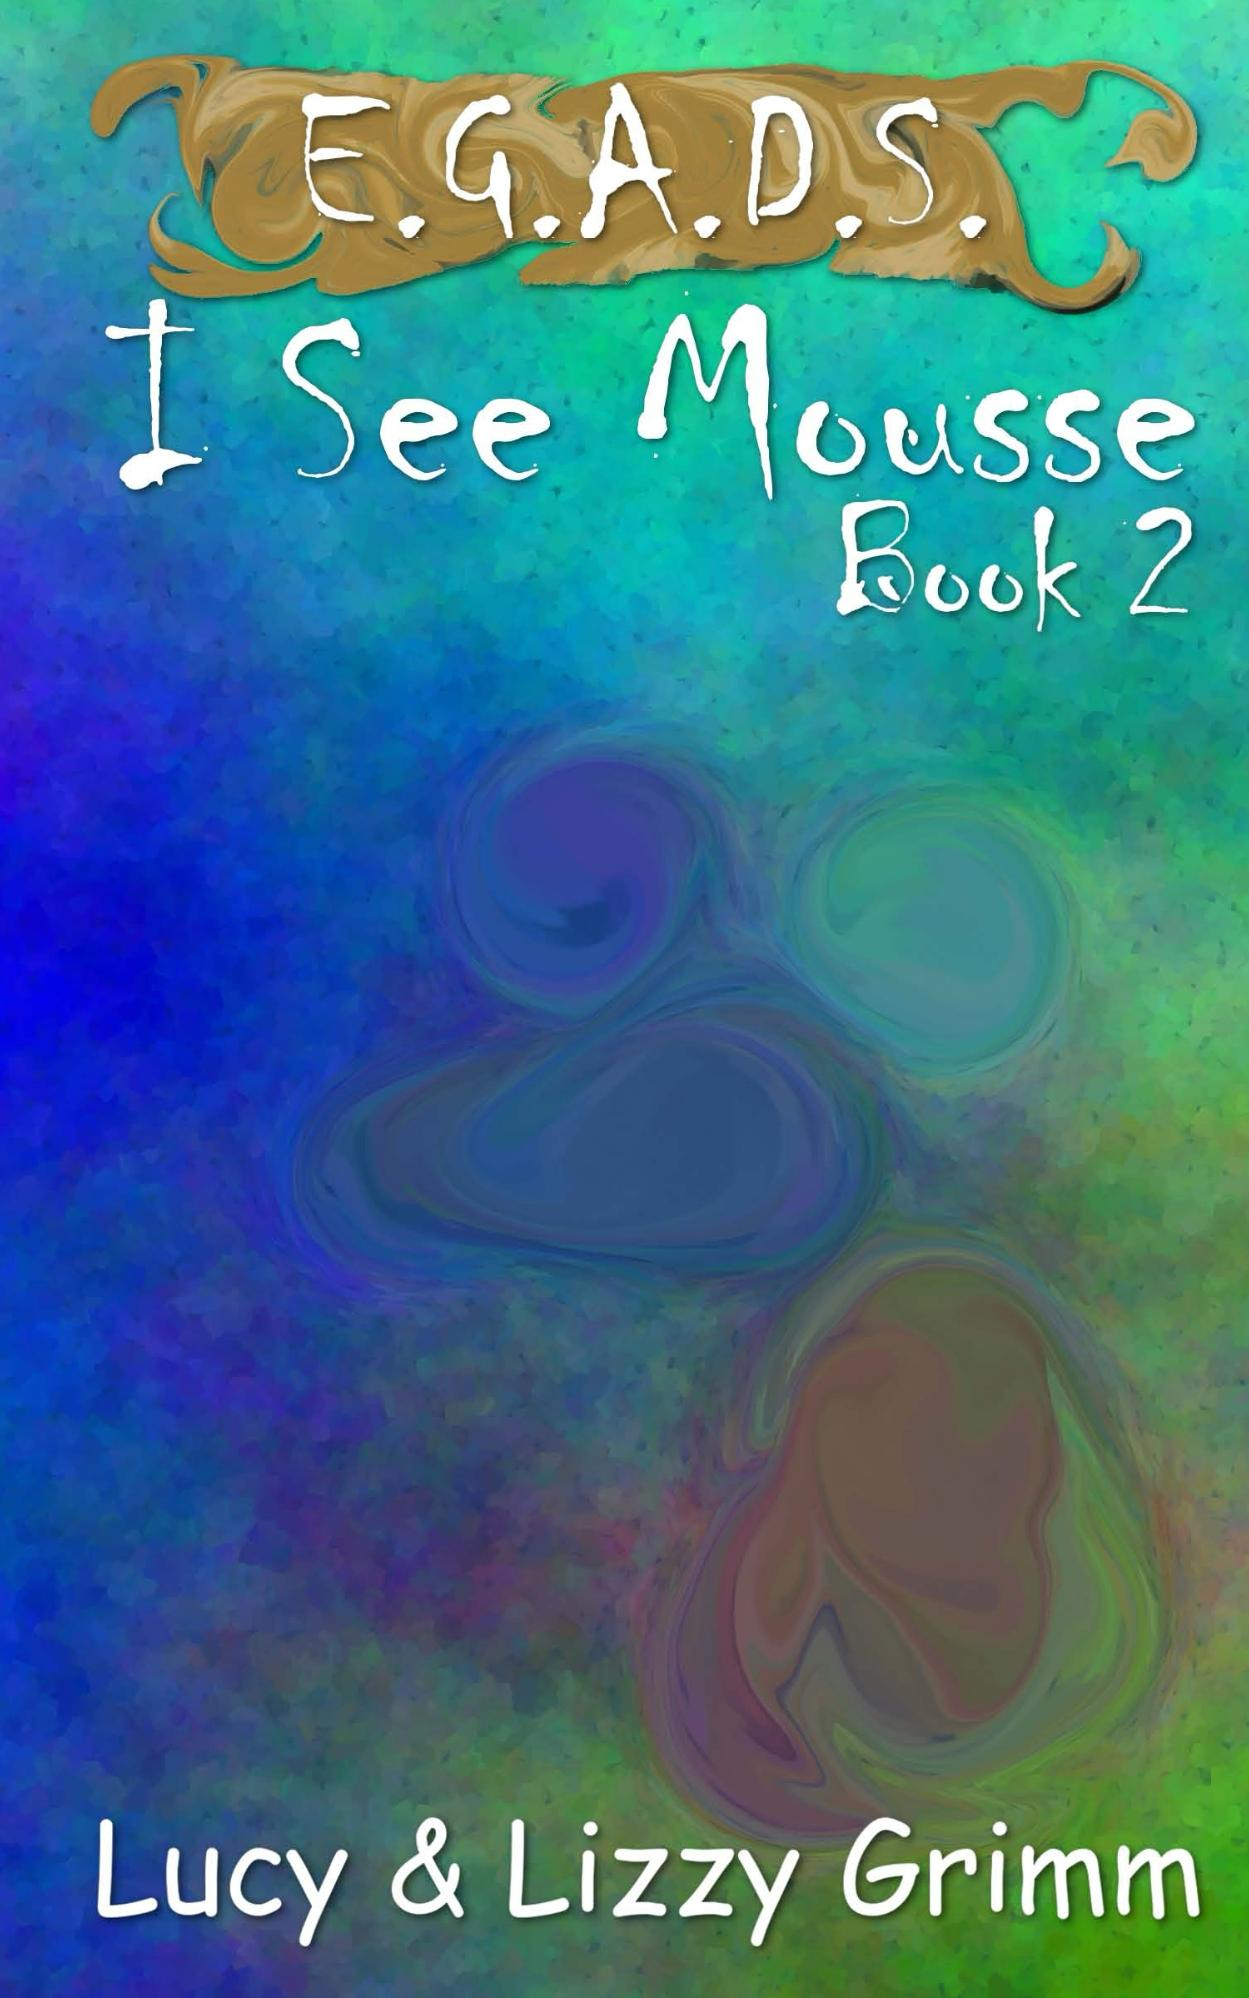 I See Mousse front cover